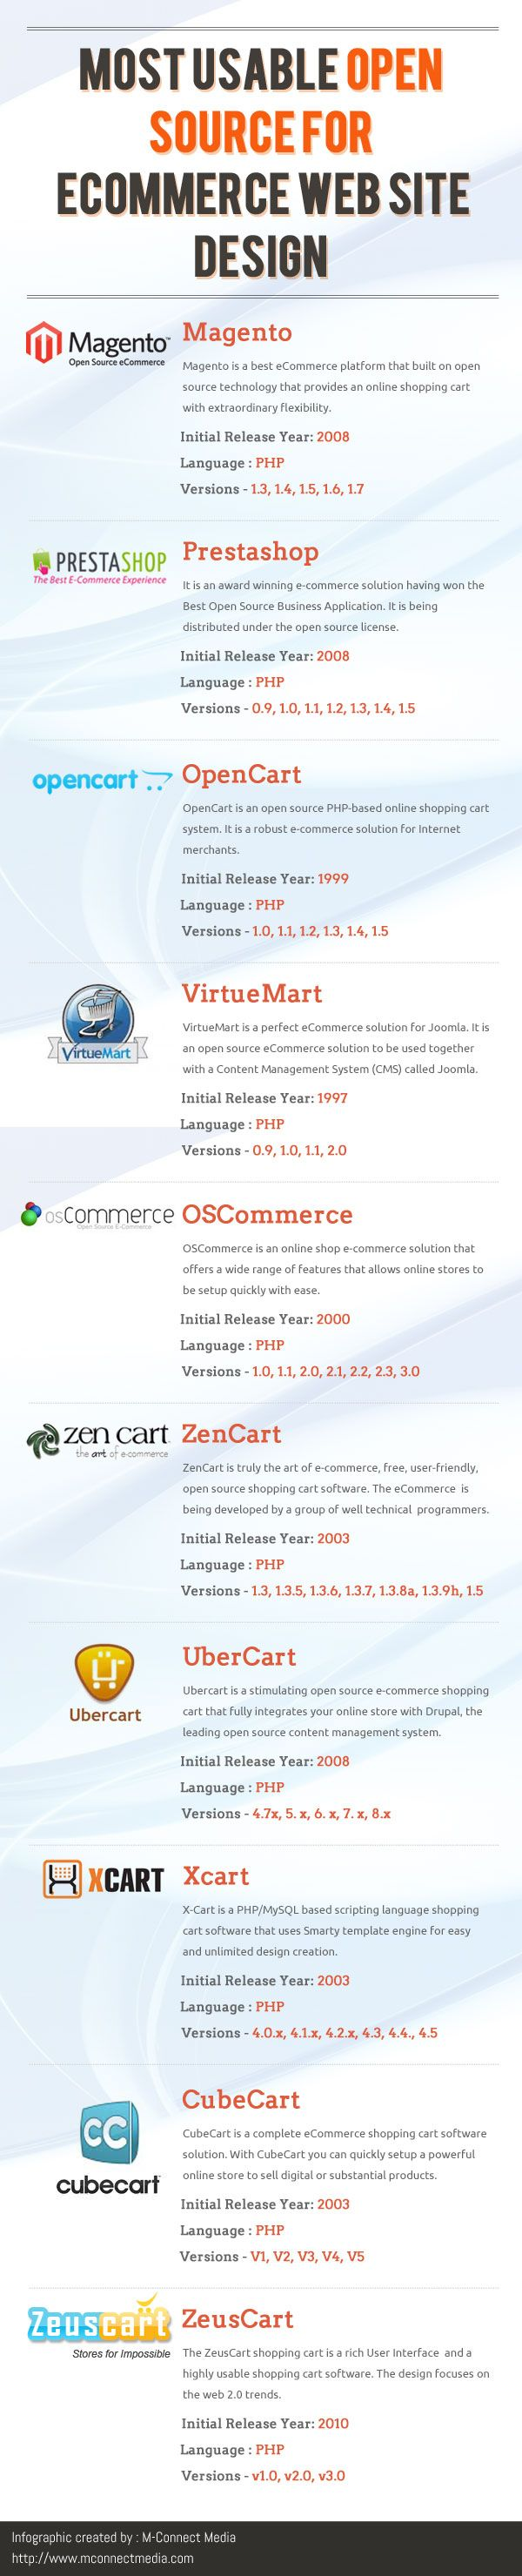 M-connect Media an #eCommerceWebsiteDesign Company develop the shopping cart in Magento. #Magento Shopping cart Development is the best for #eCommerceWebStore because it provides more functionalities and Security for the store.